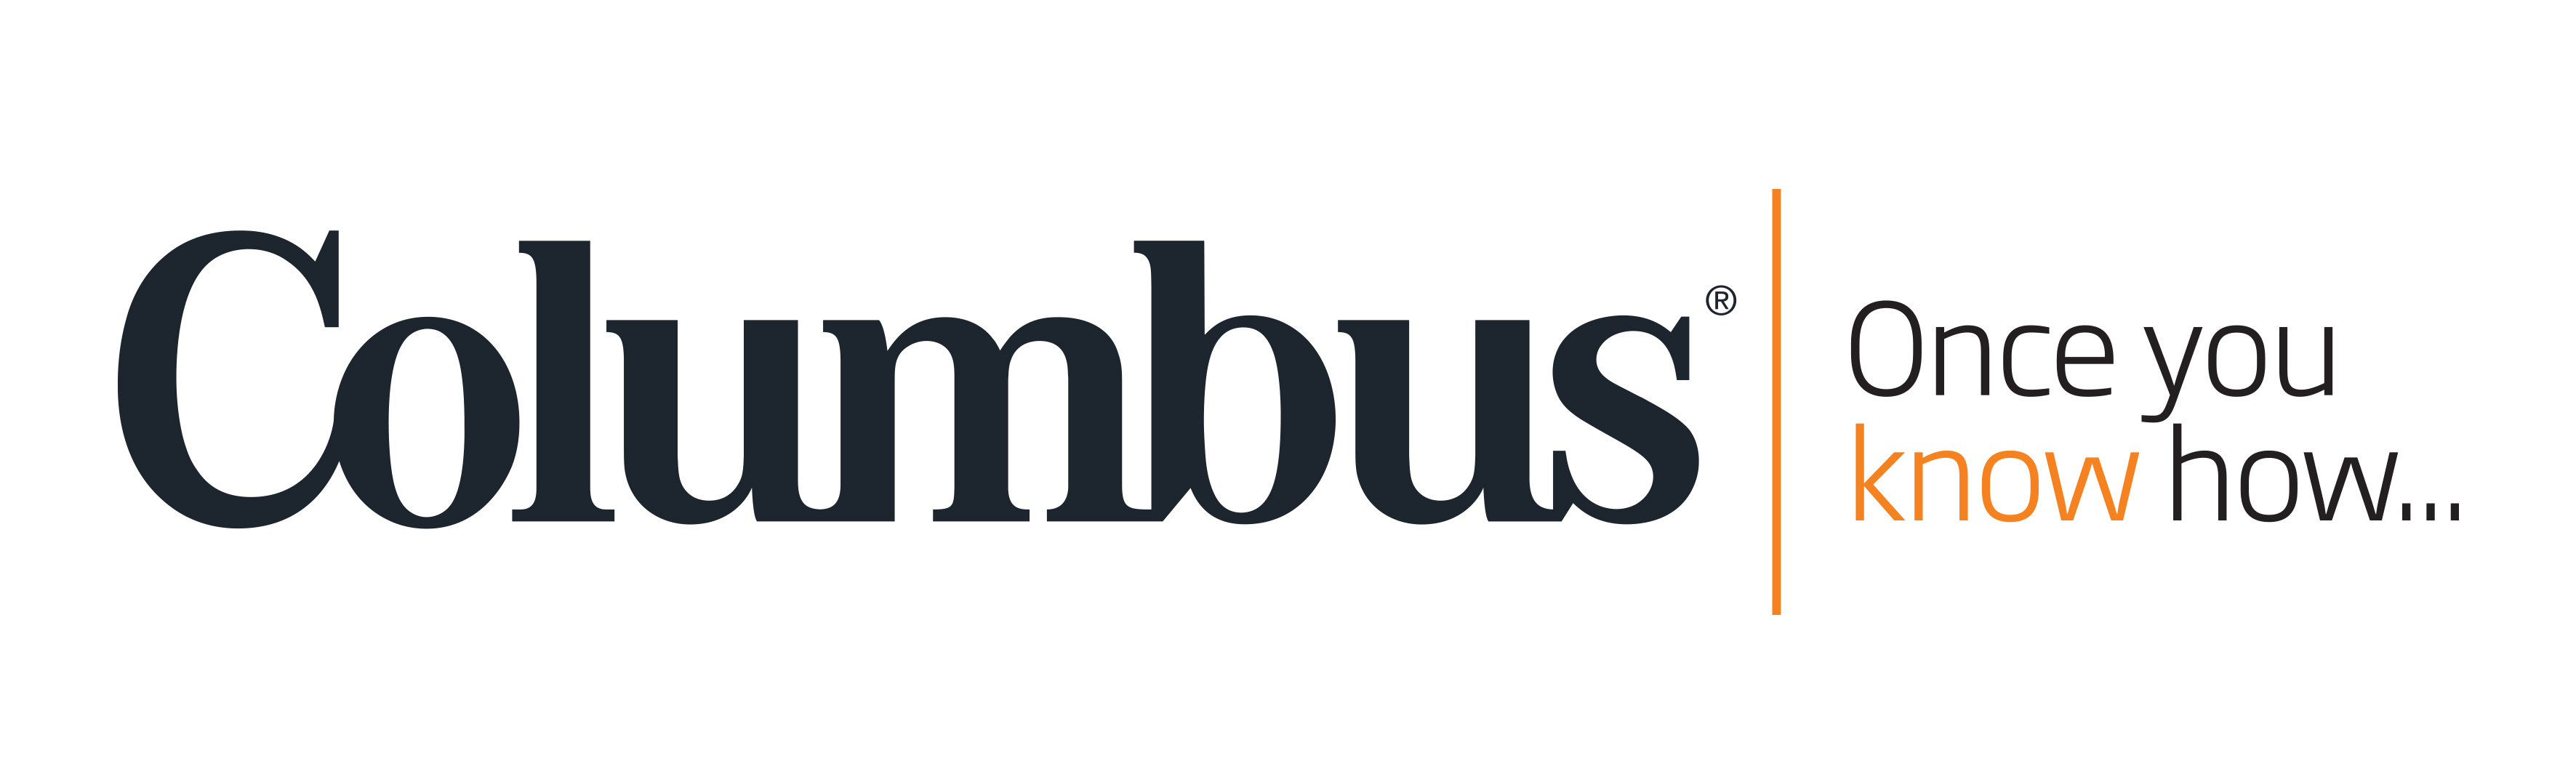 Partner Highlight Columbus Excels With Digital